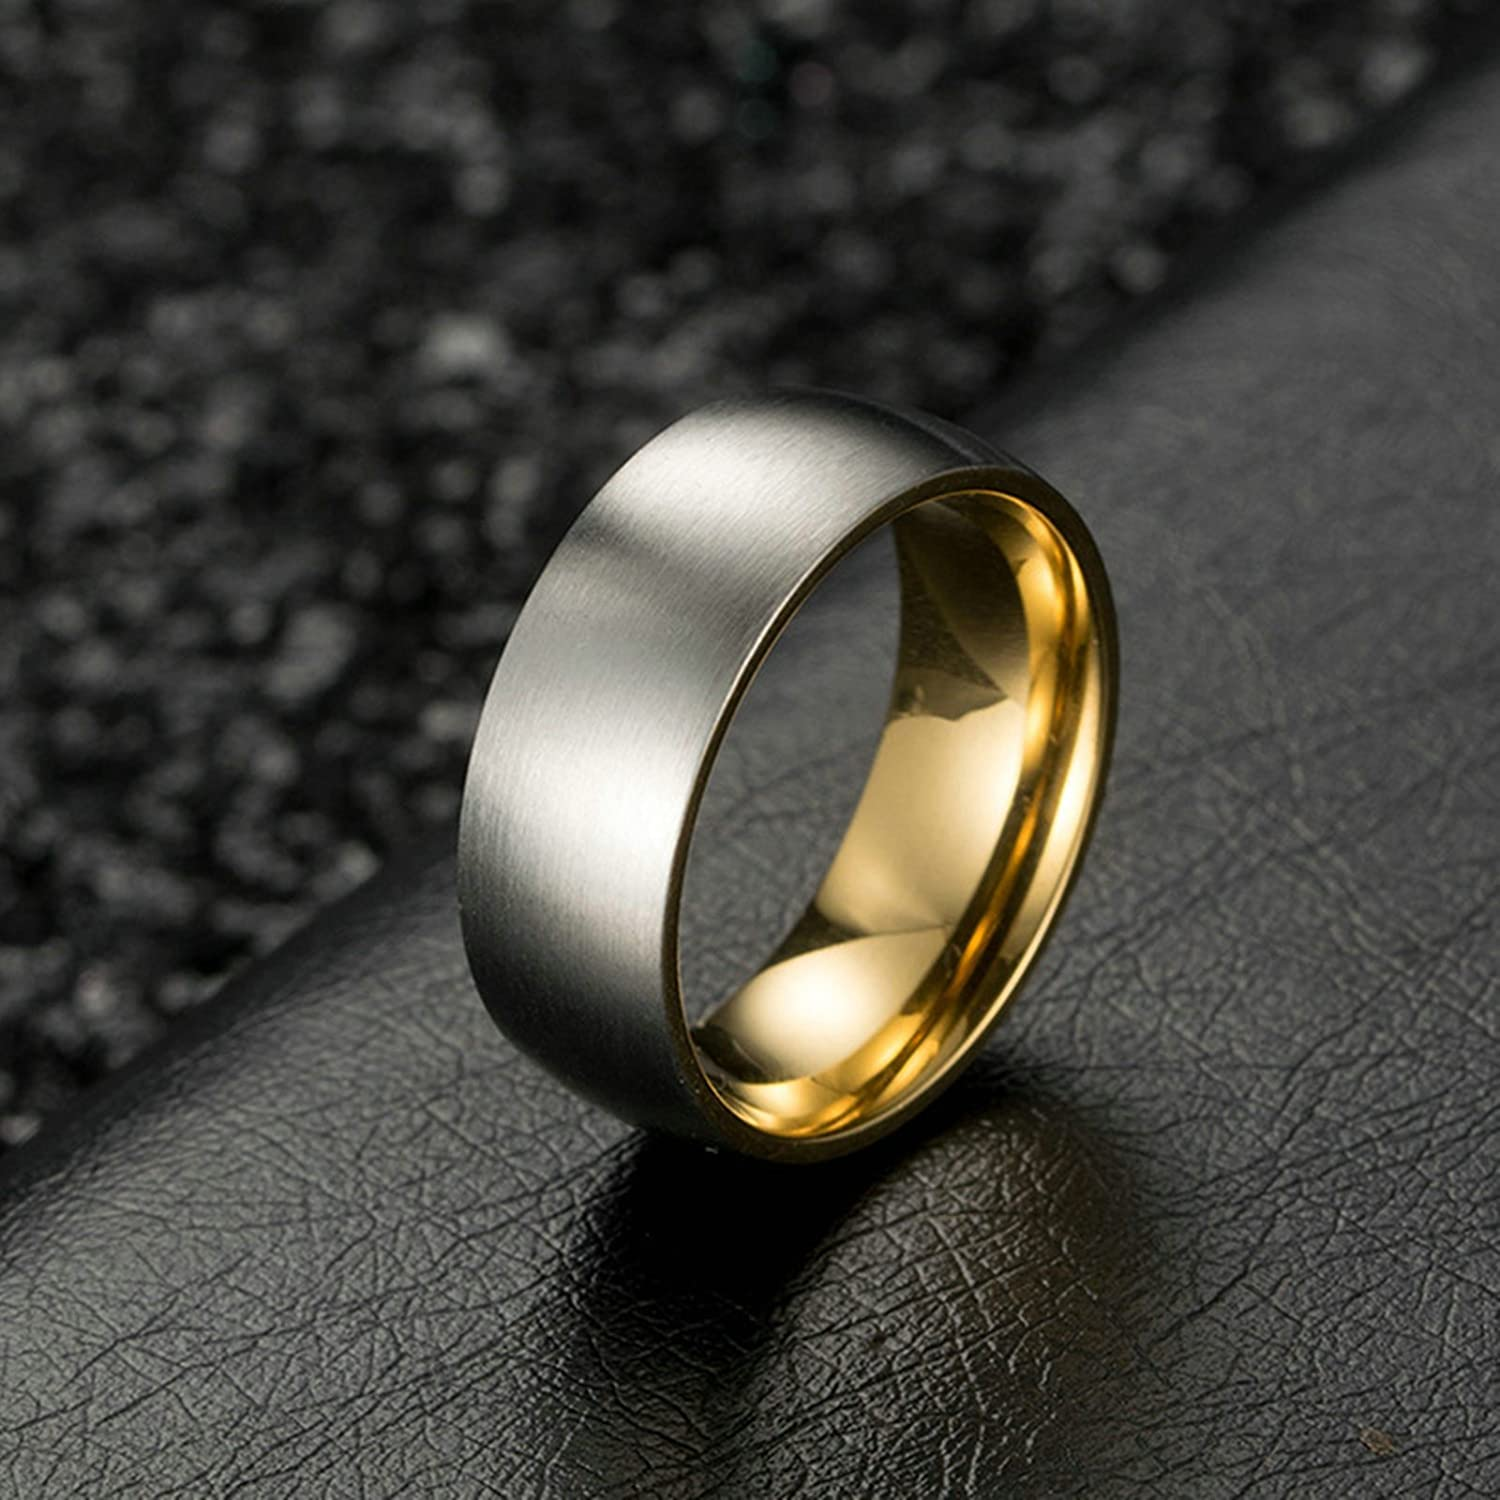 Bishilin Stainless Steel Rings for Him Matt Round Width 8 Mm Wedding Ring for Men Gold Size 12